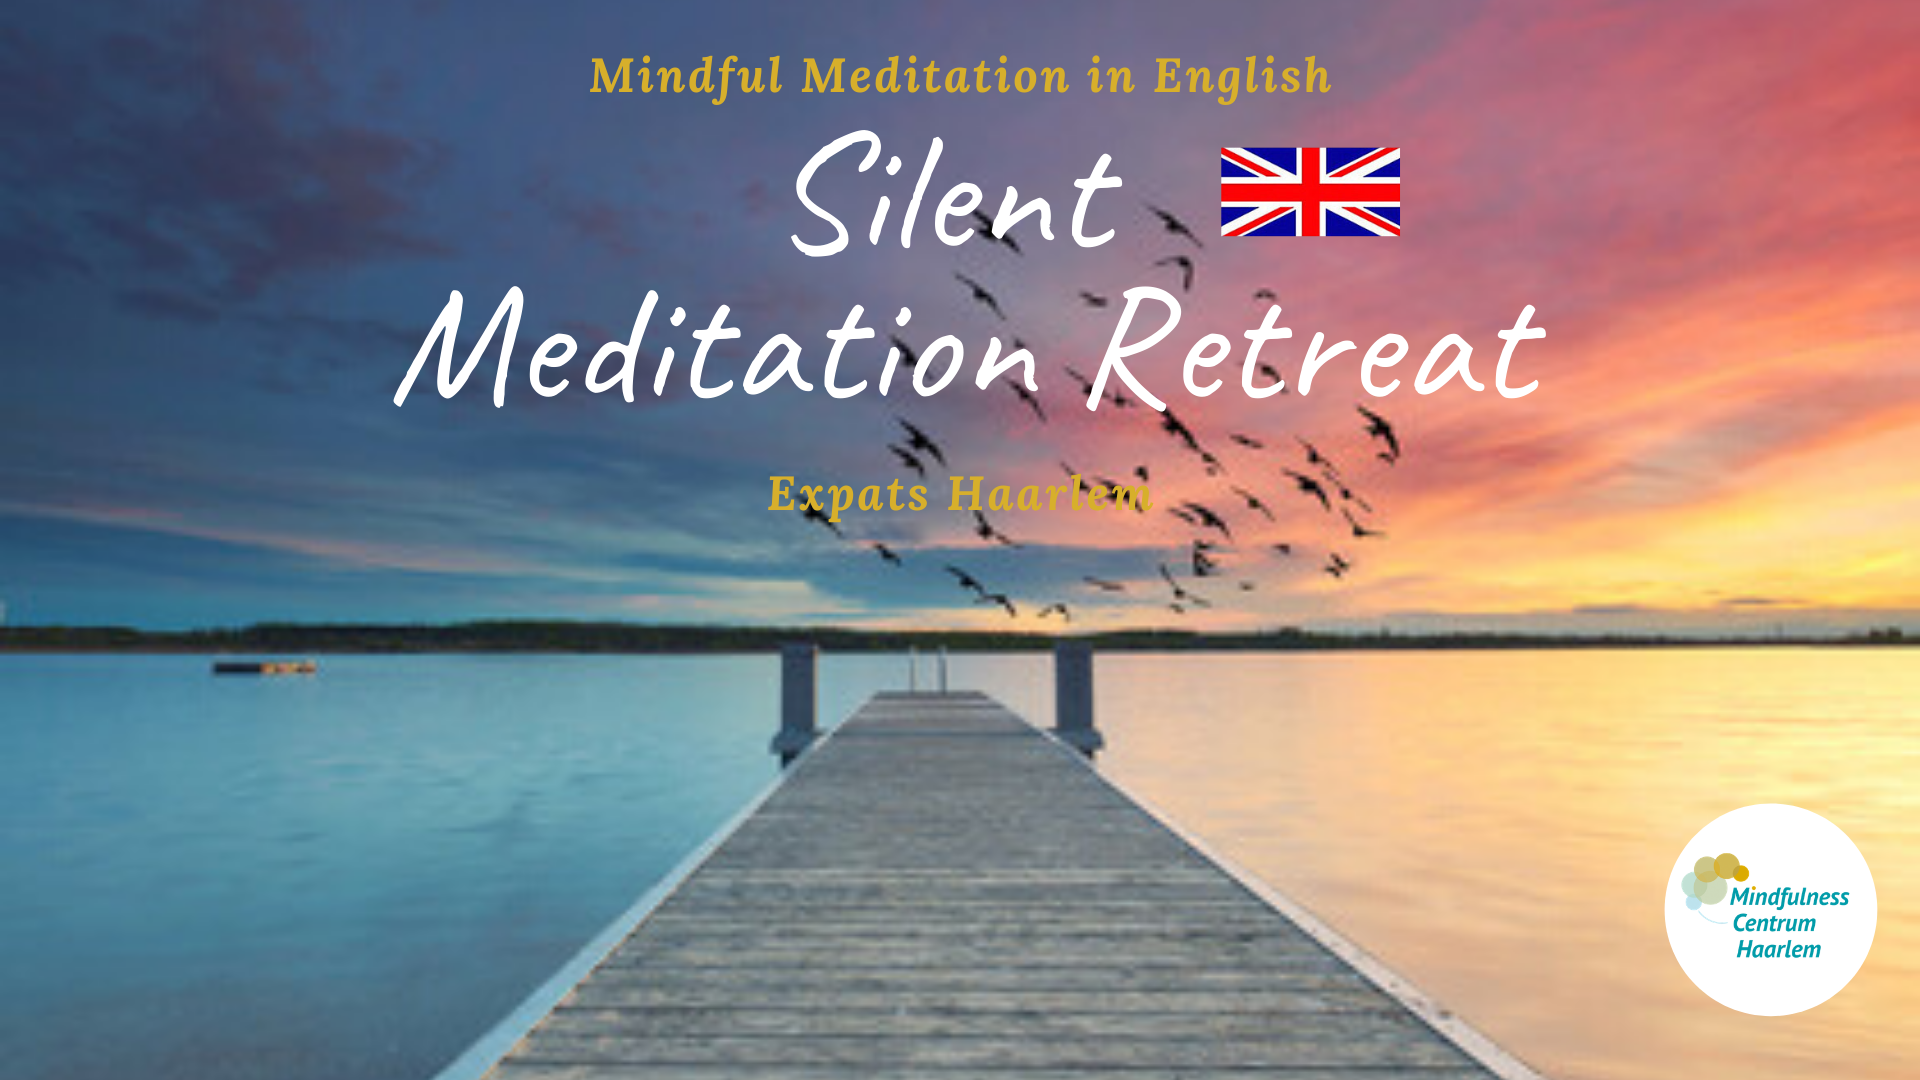 Silent Meditation Retreat in English Haarlem